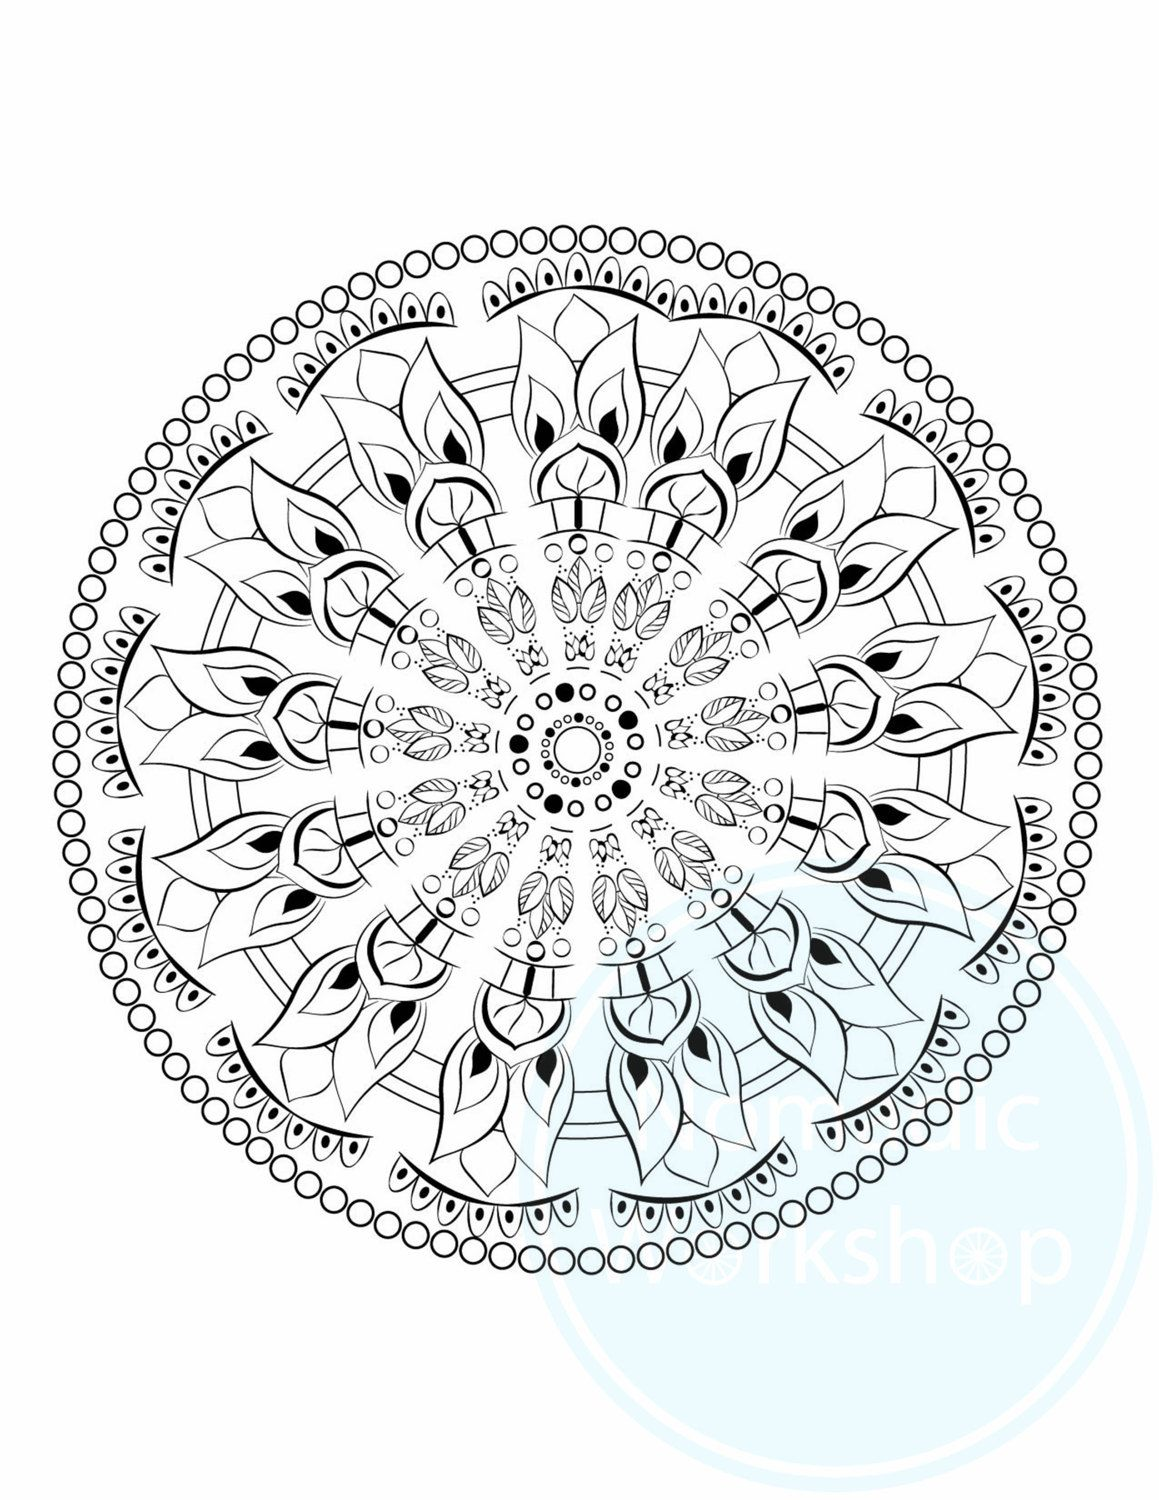 mandala 1 free page coloring page for adults coloring pages coloring for adults coloring. Black Bedroom Furniture Sets. Home Design Ideas